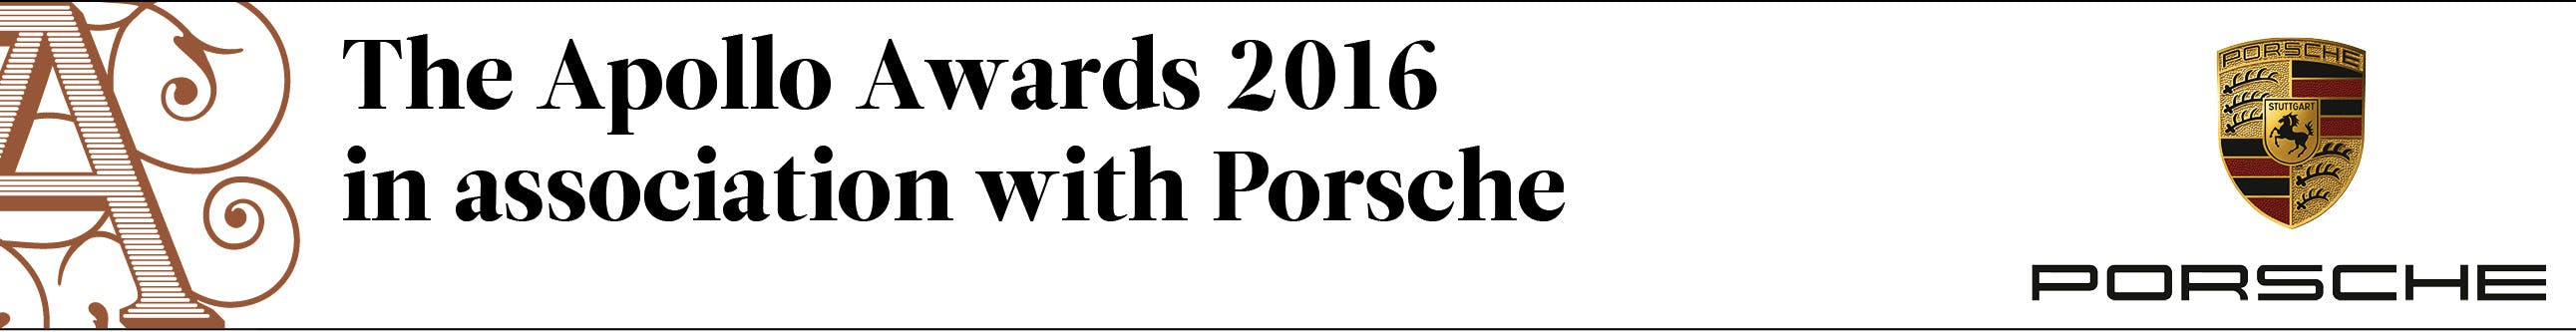 The Apollo Awards 2016 in association with Porsche